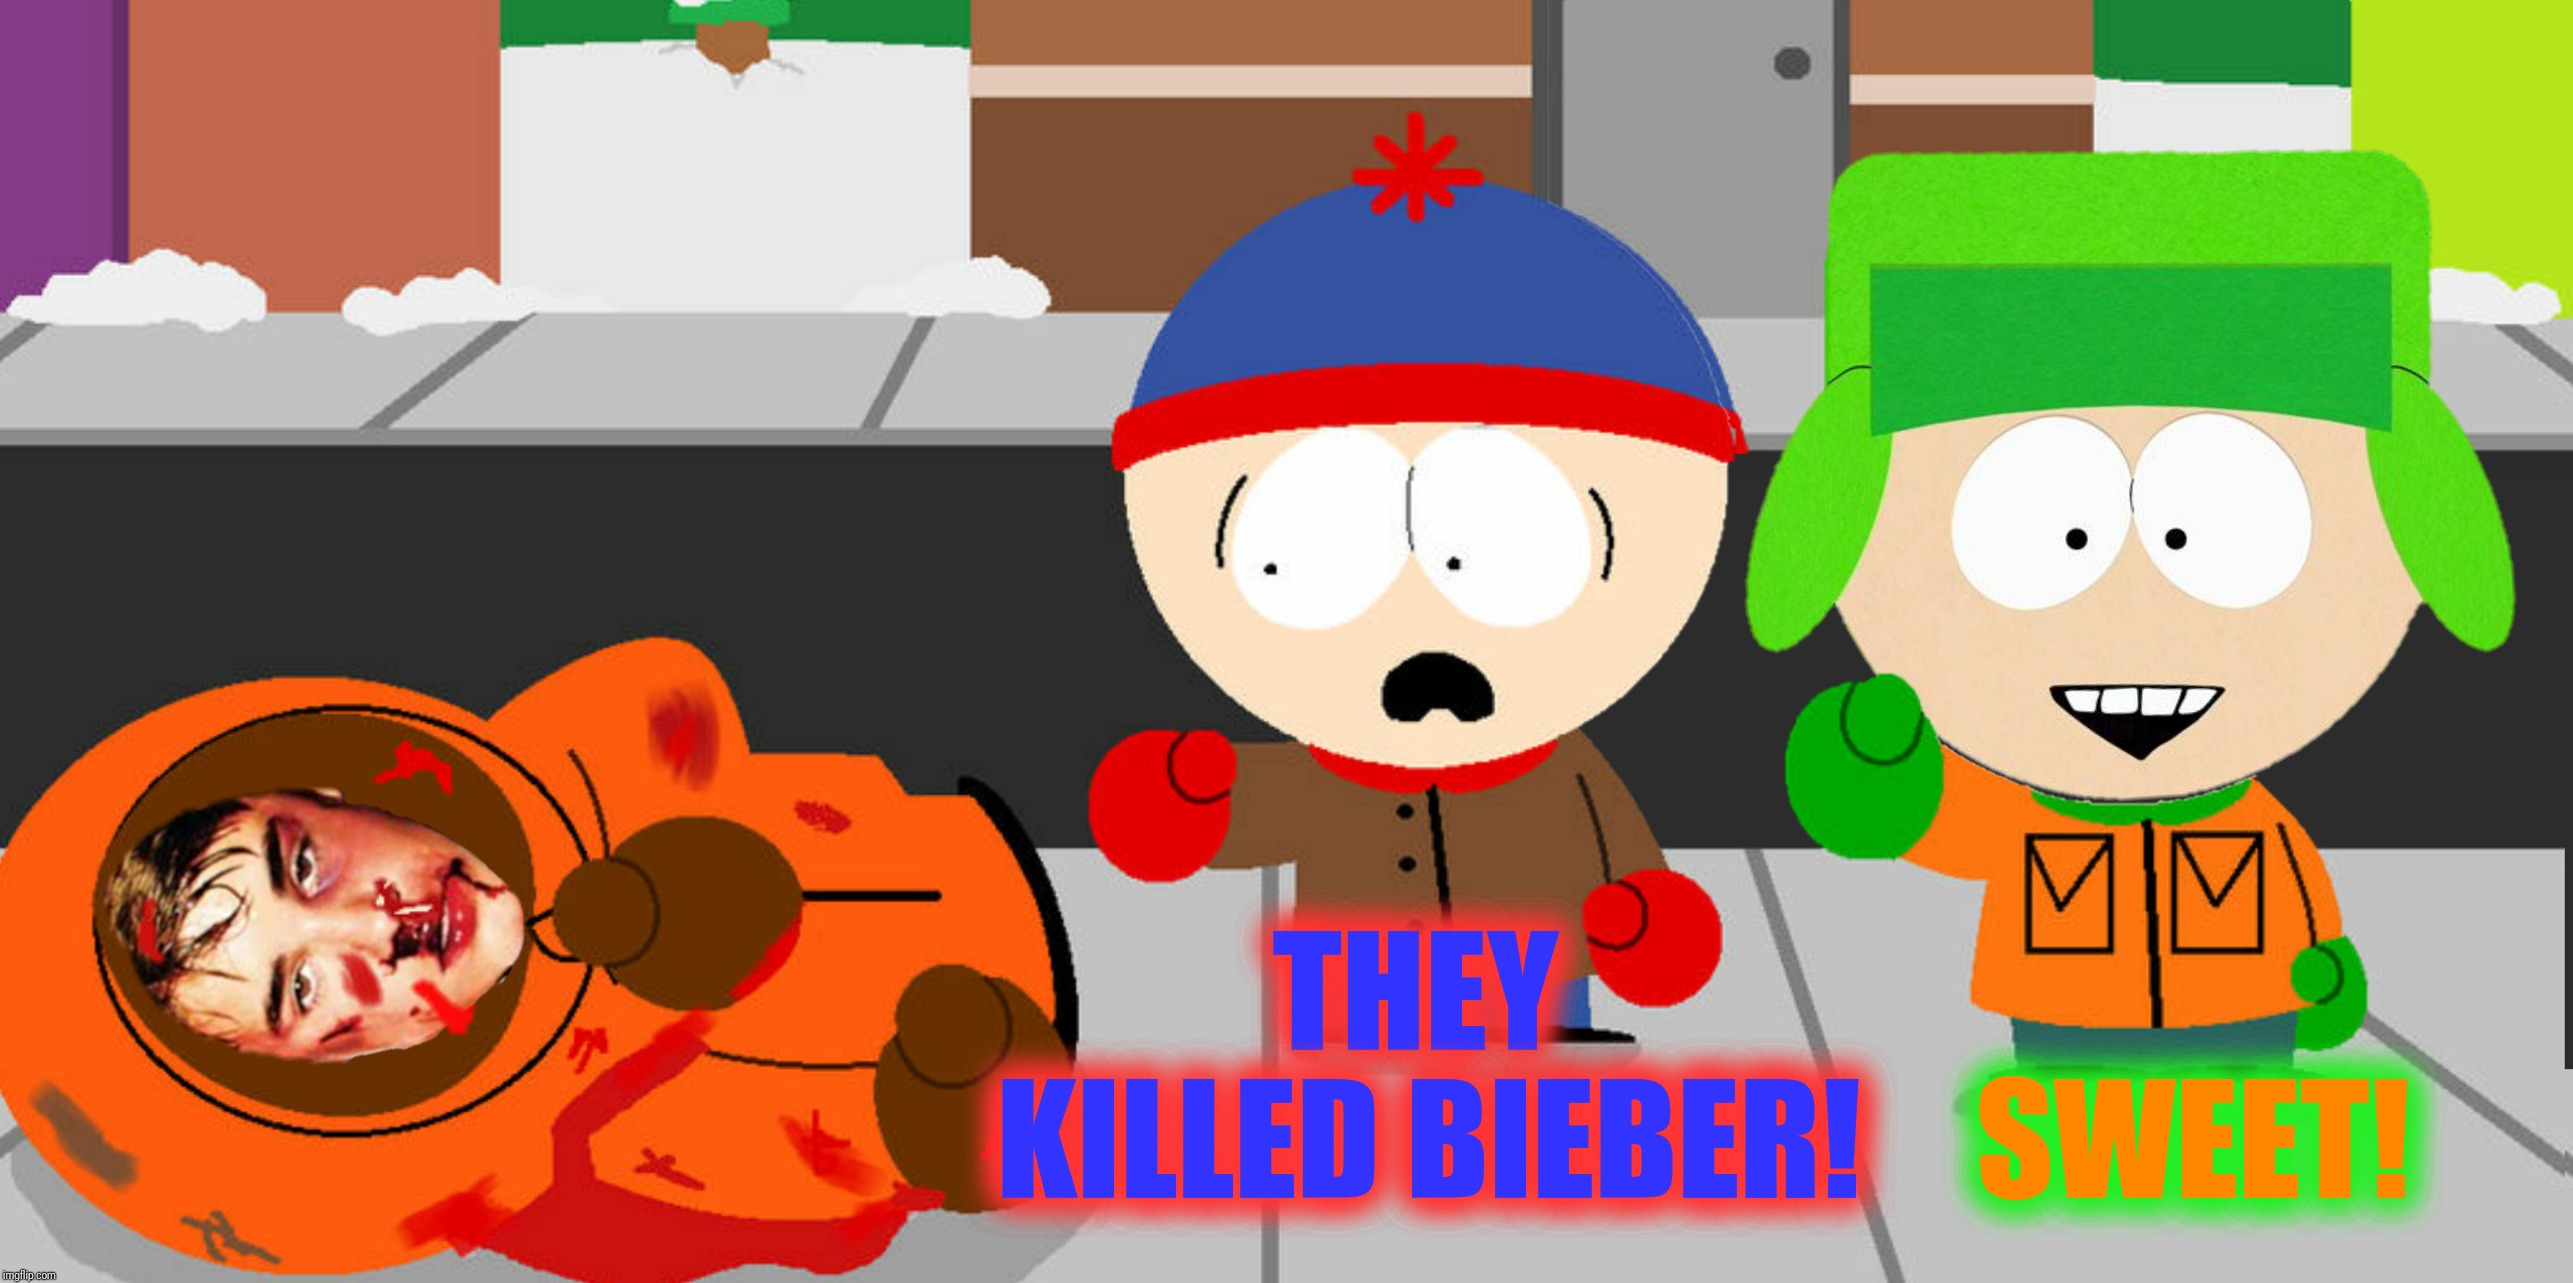 Bad Photoshop Sunday presents:  Betcha He's back tomorrow | THEY KILLED BIEBER! SWEET! | image tagged in bad photoshop sunday,south park,justin bieber,they killed kenny | made w/ Imgflip meme maker